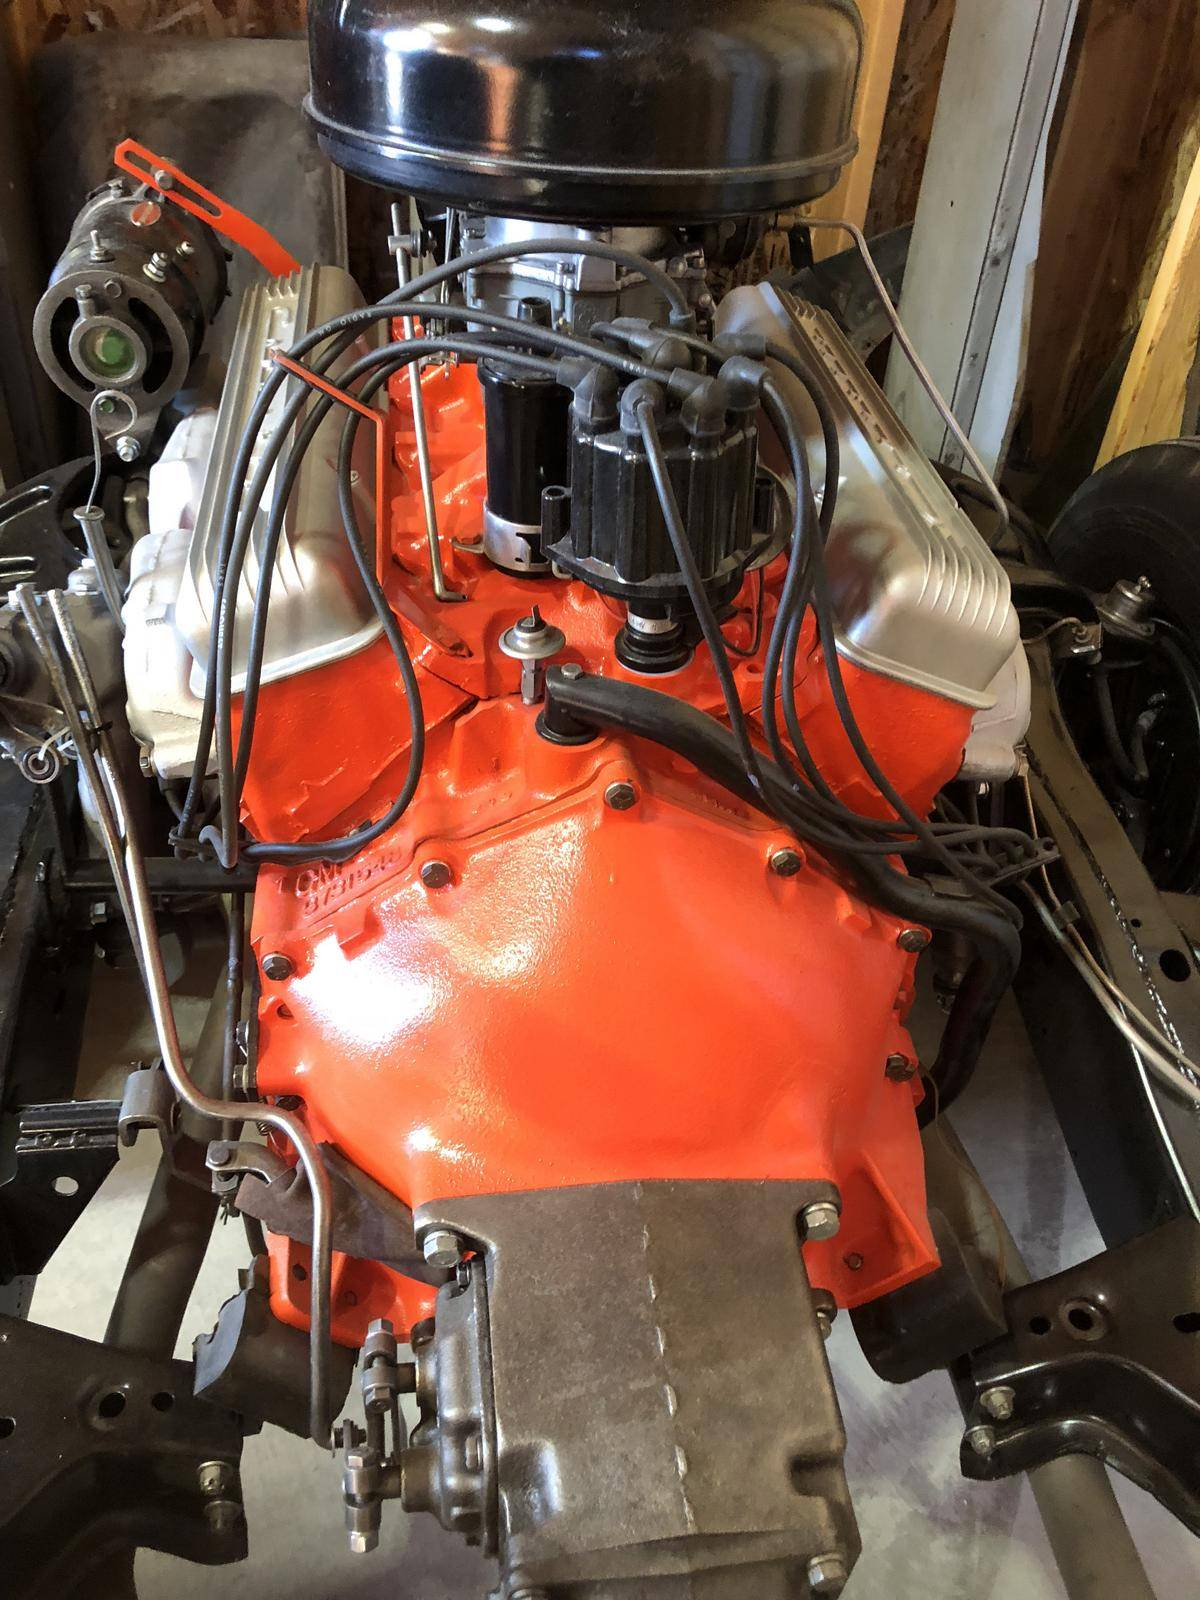 medium resolution of image 6 of 14 57 chevy bel air 2 door fully restored chassis